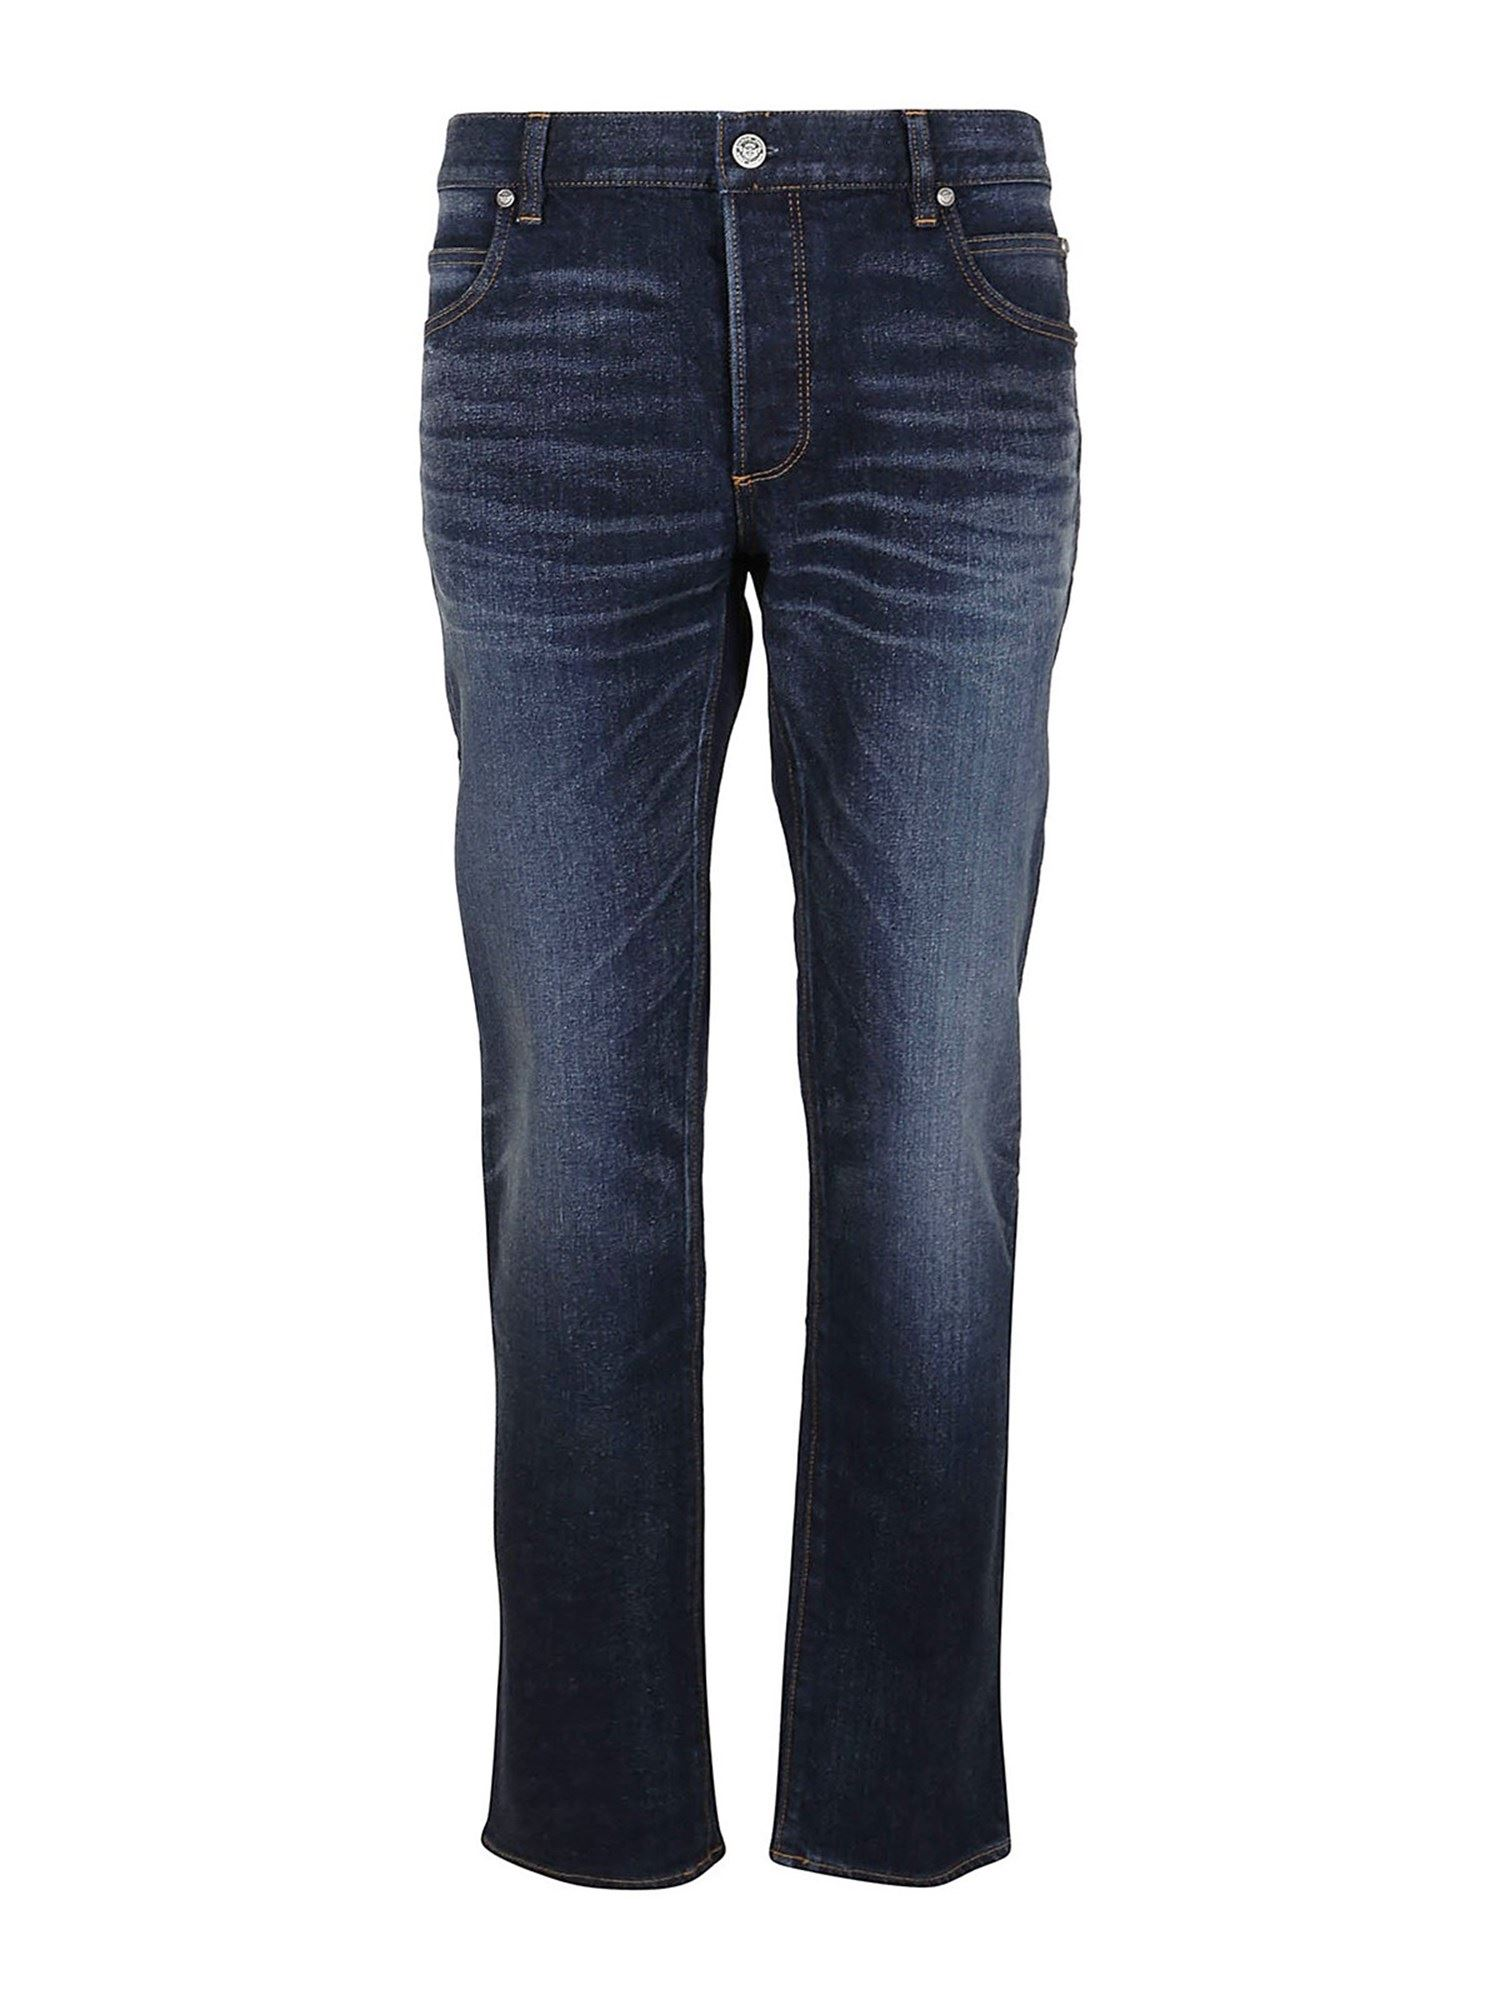 Balmain Tapered jeans B EMBROIDERY JEANS IN BLUE